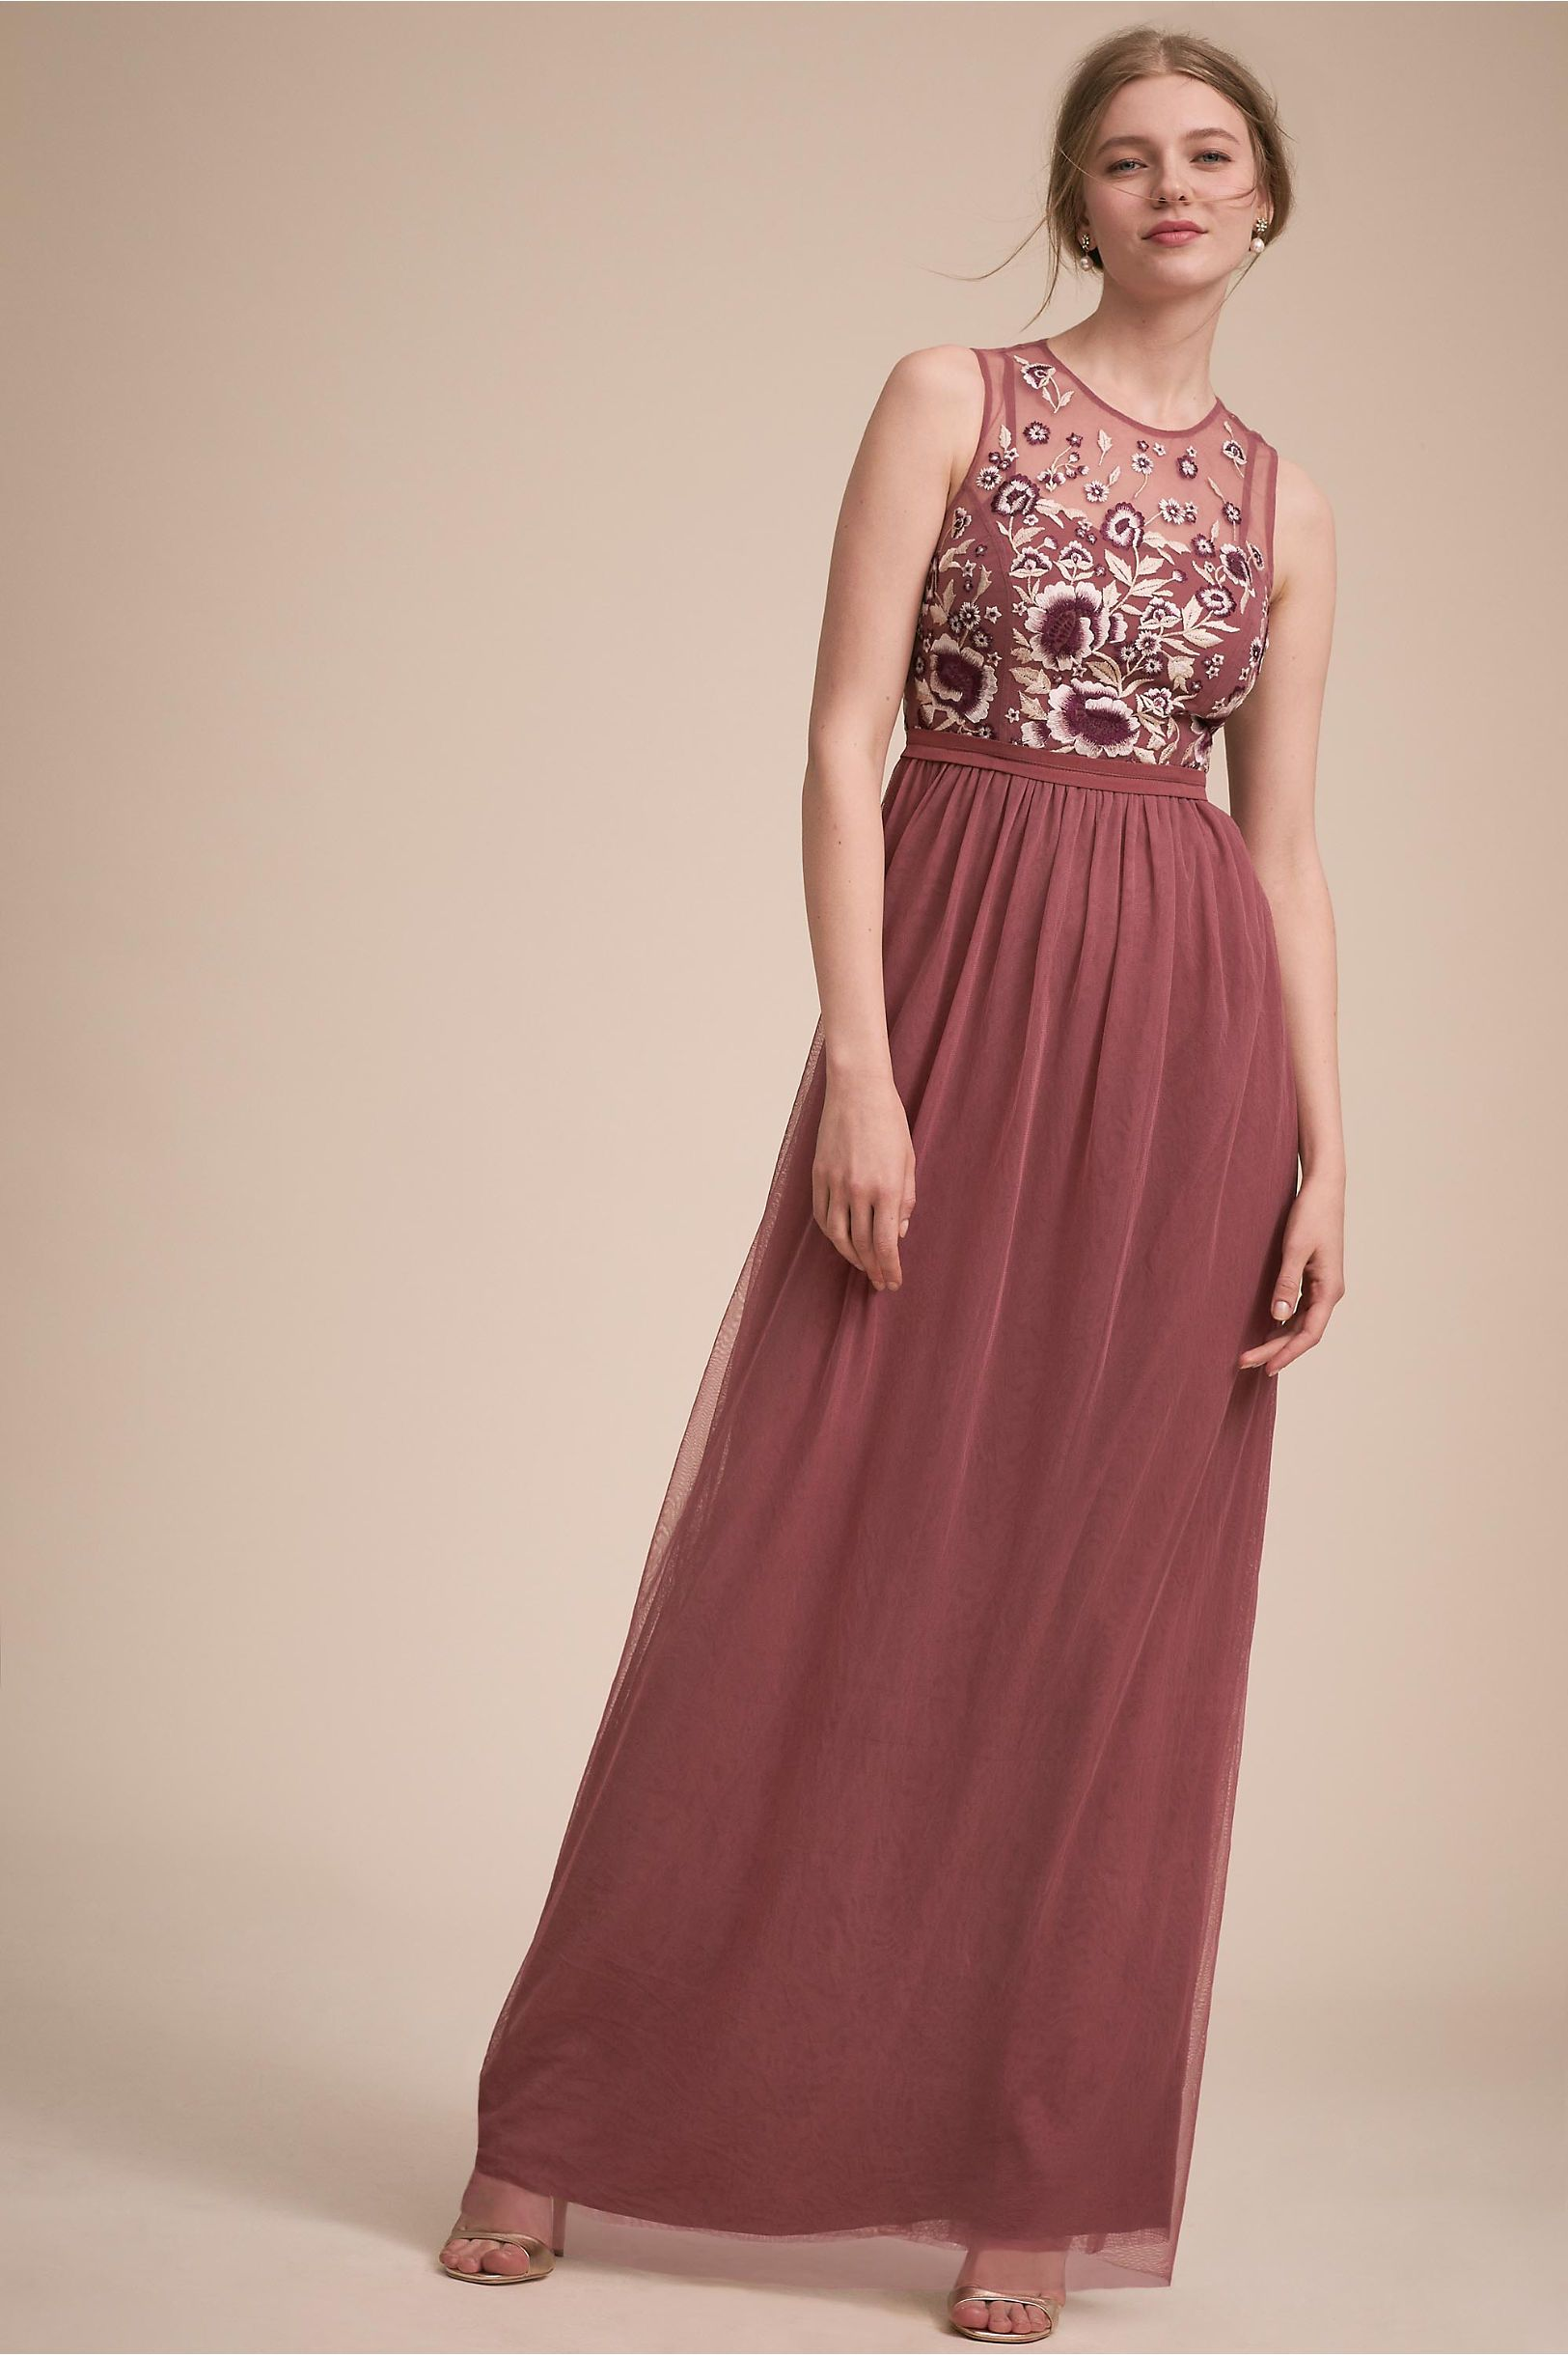 Best wedding dresses for big busts  BHLDNus Baldwin Dress in Cinnamon Rose  Shop the look products